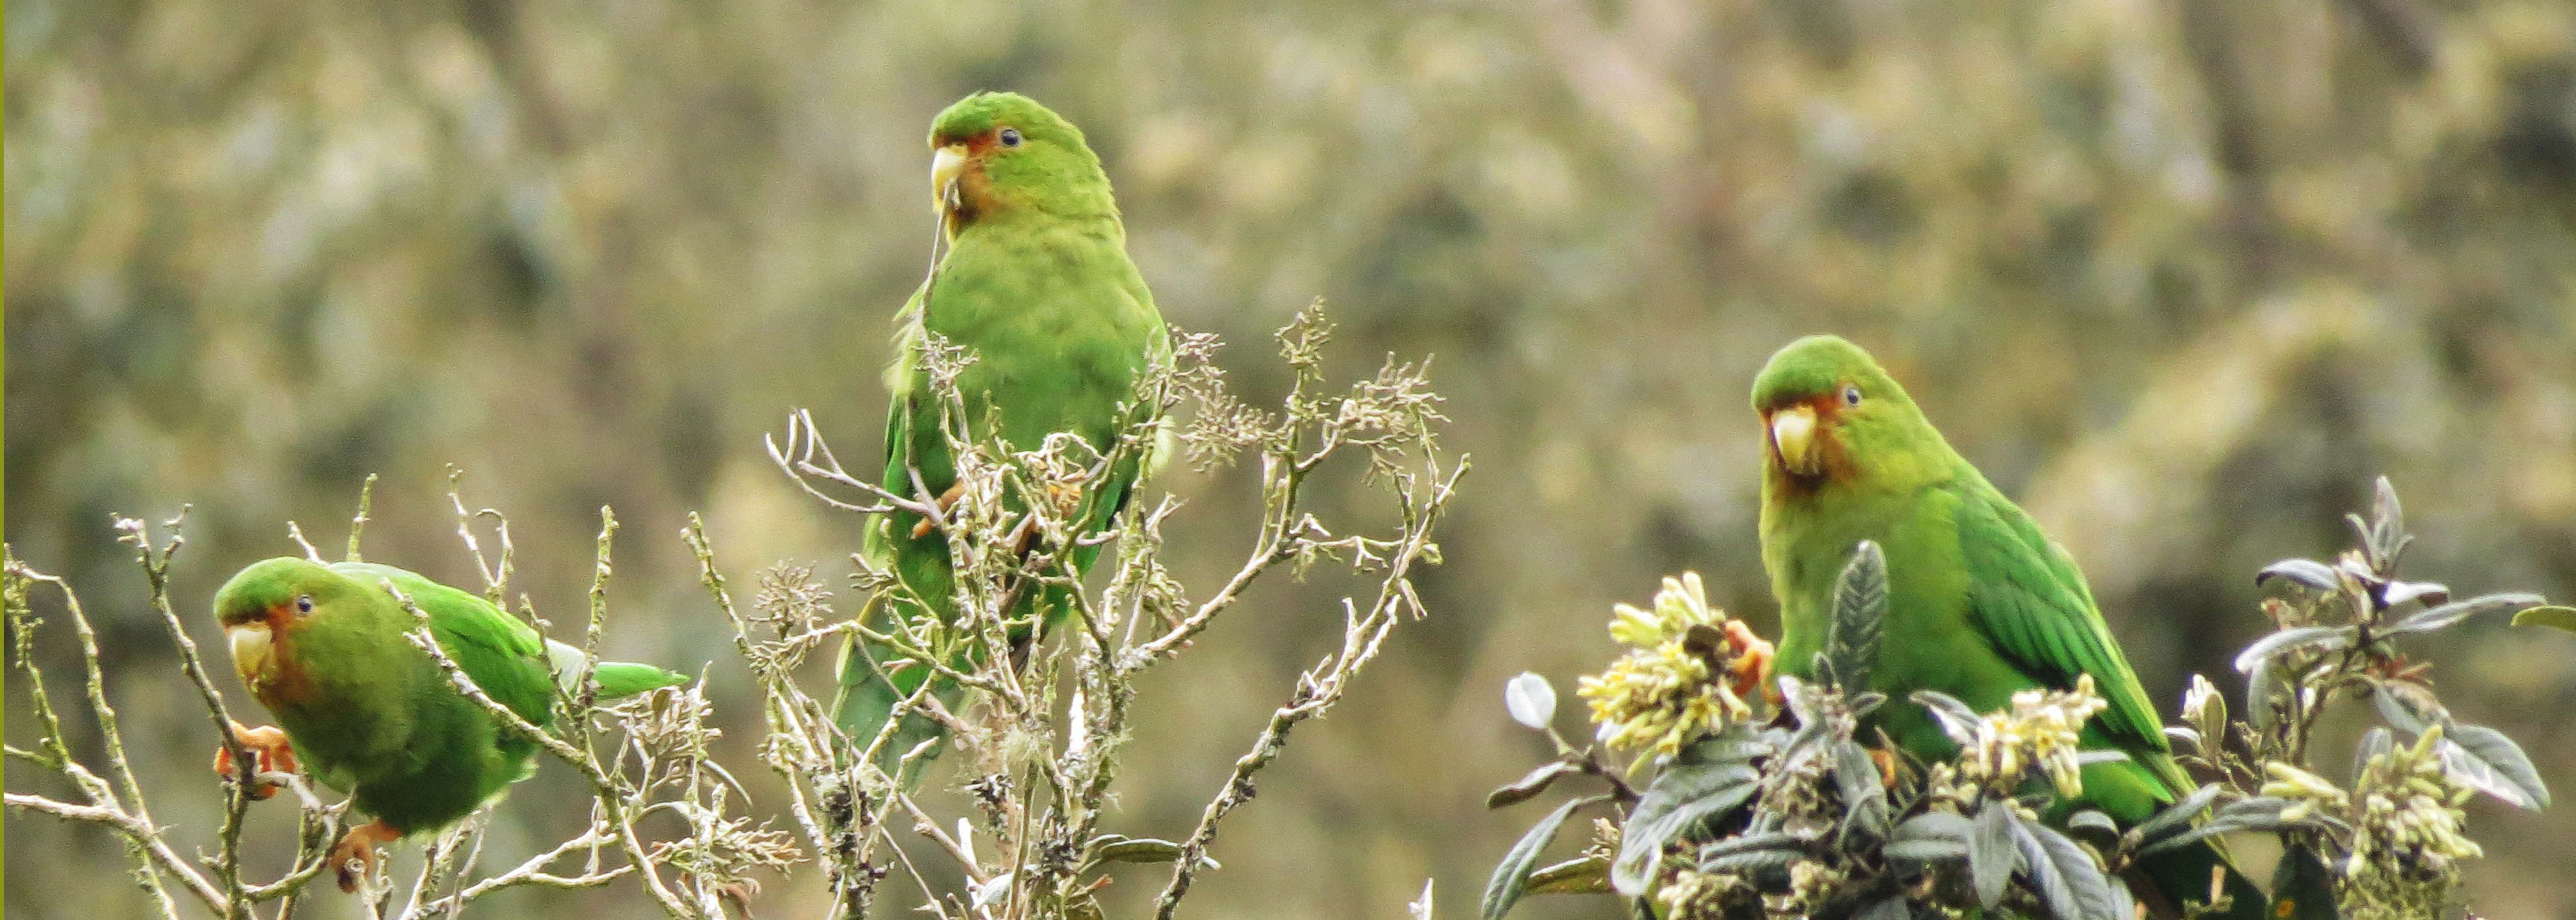 ENDEMIC Rufous-fronted Parakeet